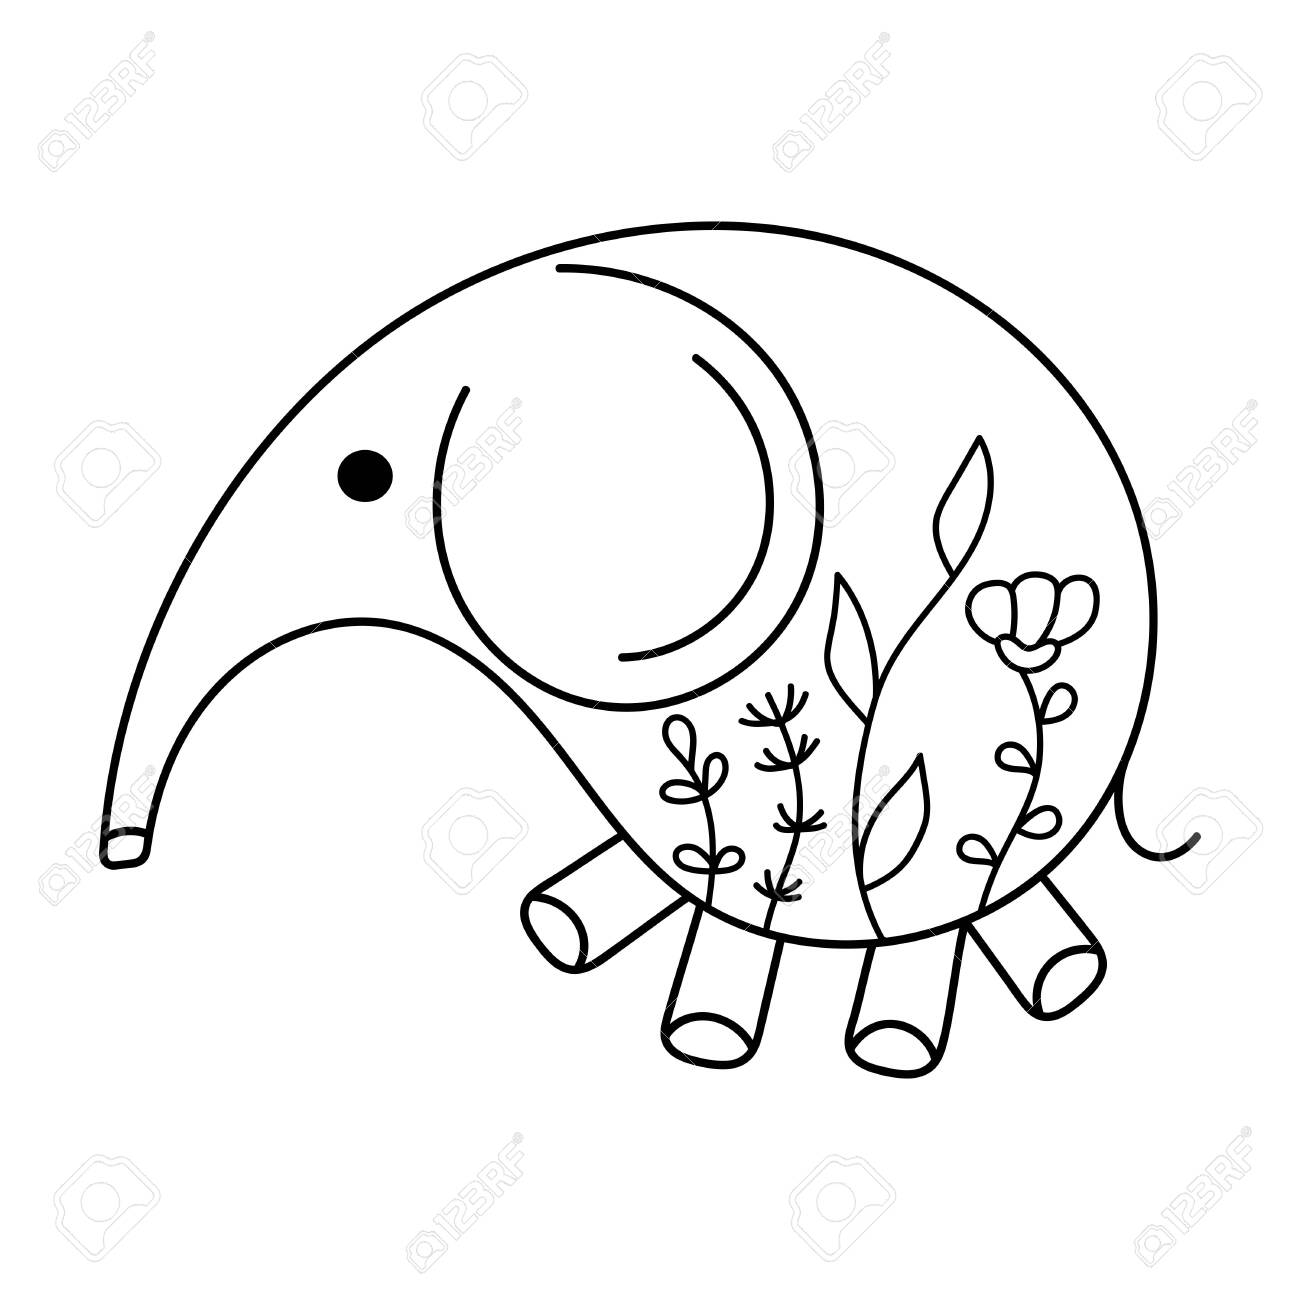 Hand Drawn Cute Baby Elephant Coloring Pages Floral Pattern Royalty Free Cliparts Vectors And Stock Illustration Image 136667801